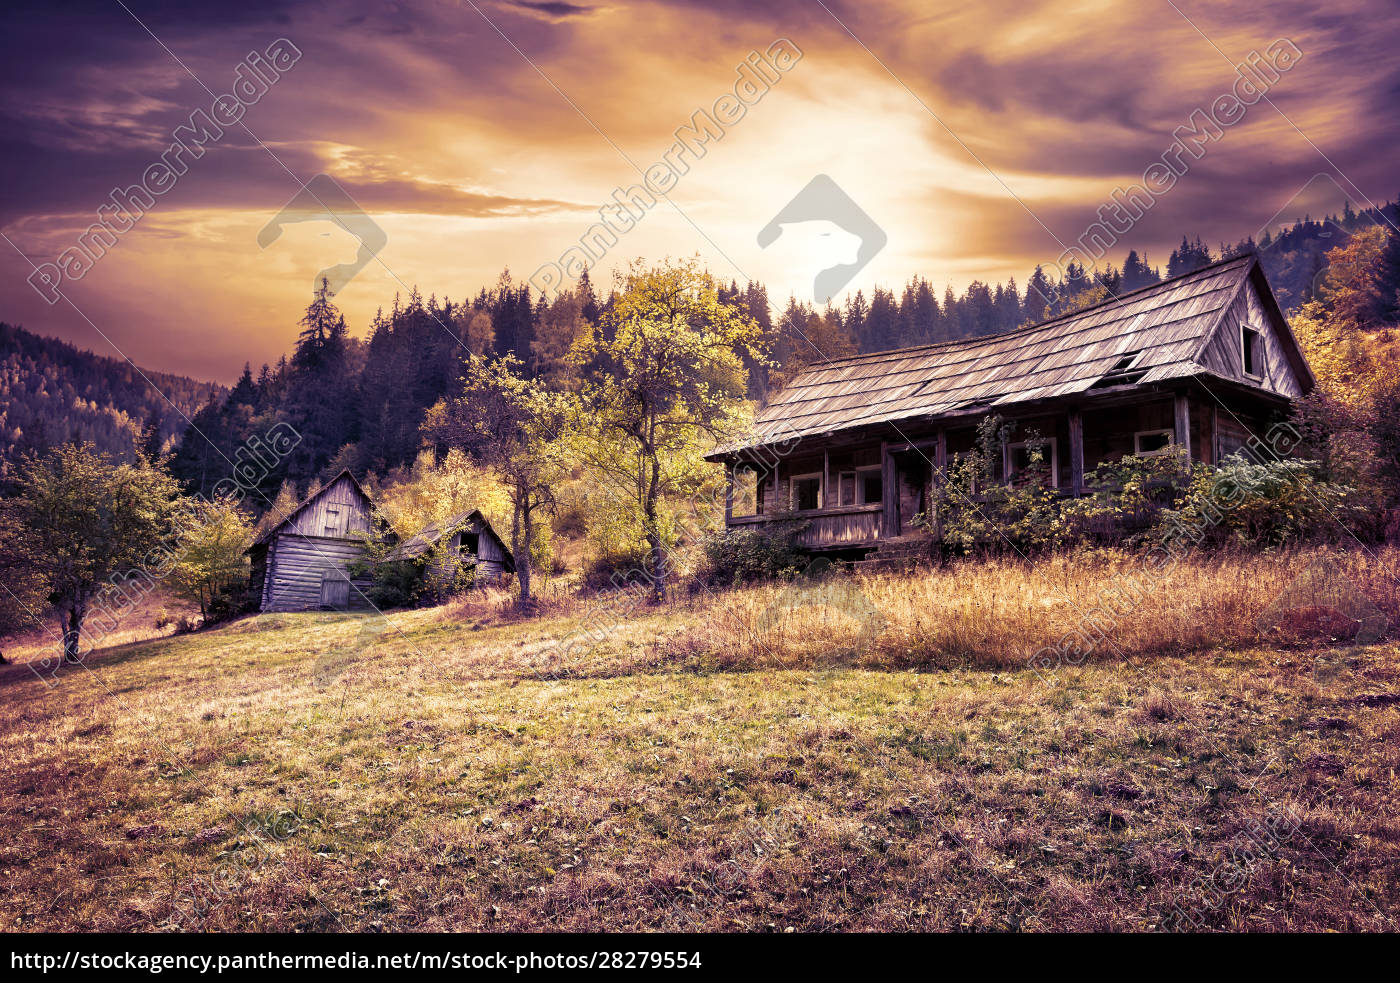 abandoned, wooden, house, on, hillside, under - 28279554